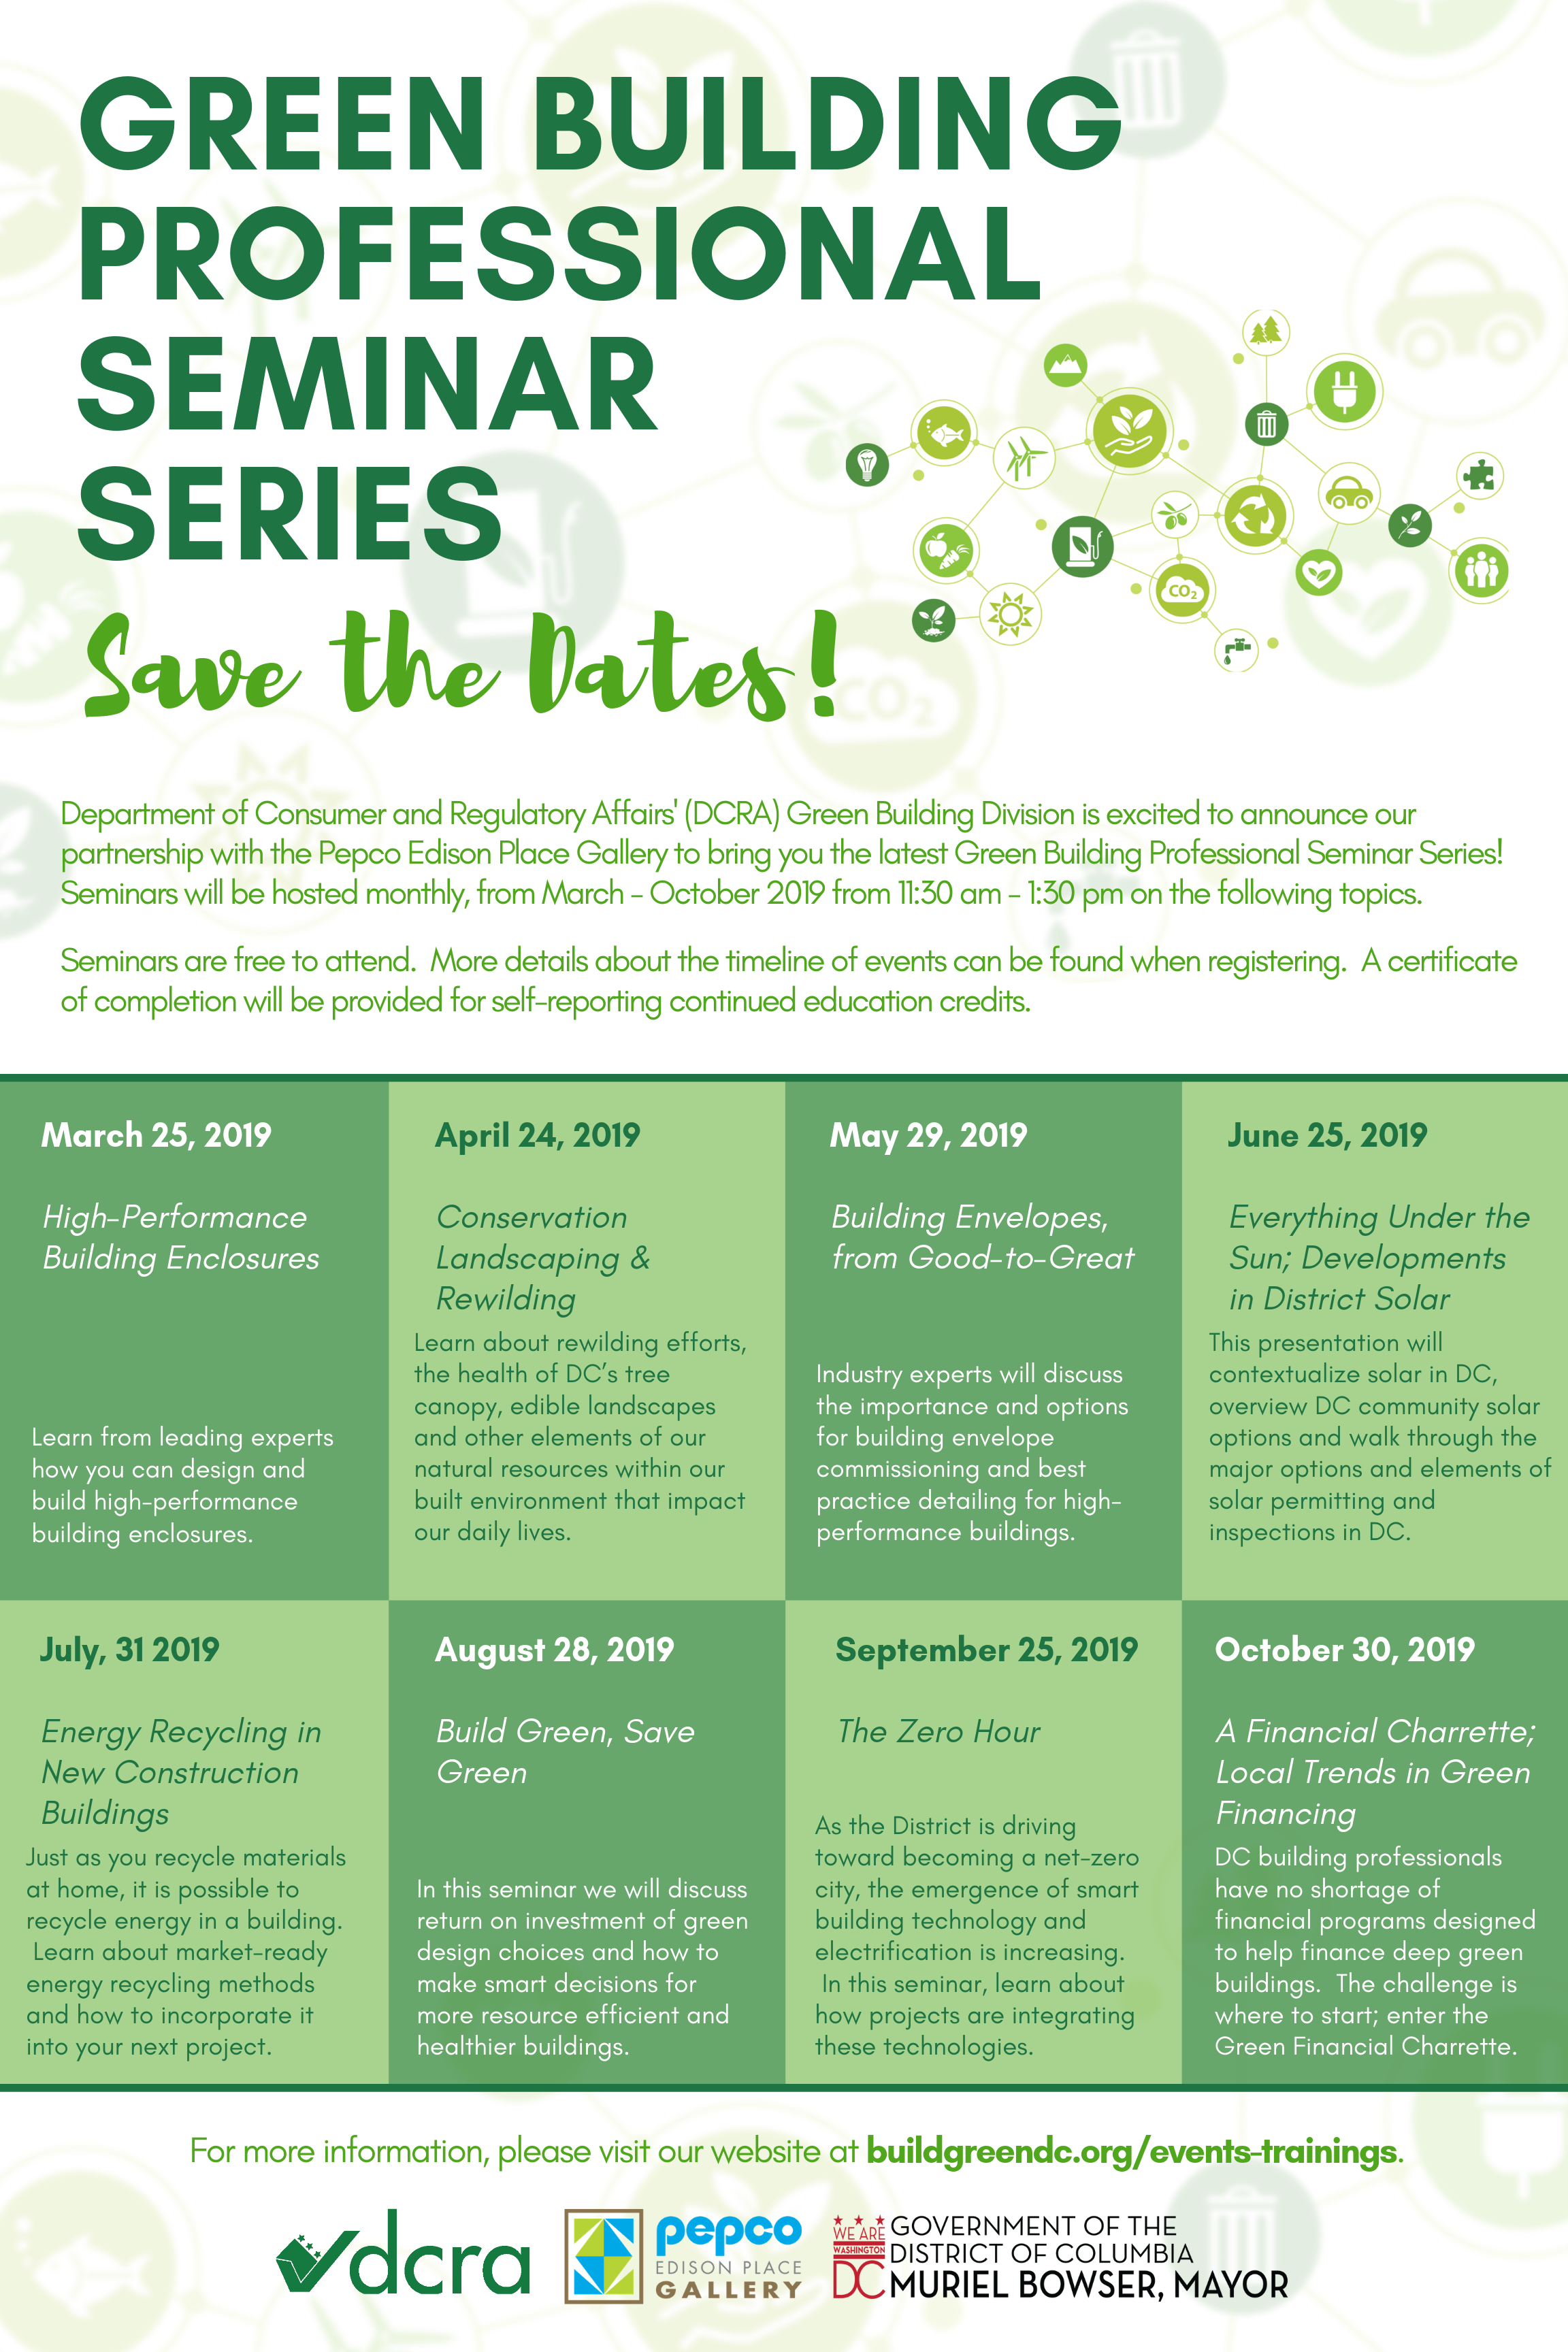 2019 Green Building Professional Seminar Series Graphic - Promotional Flyer or Poster V2.png